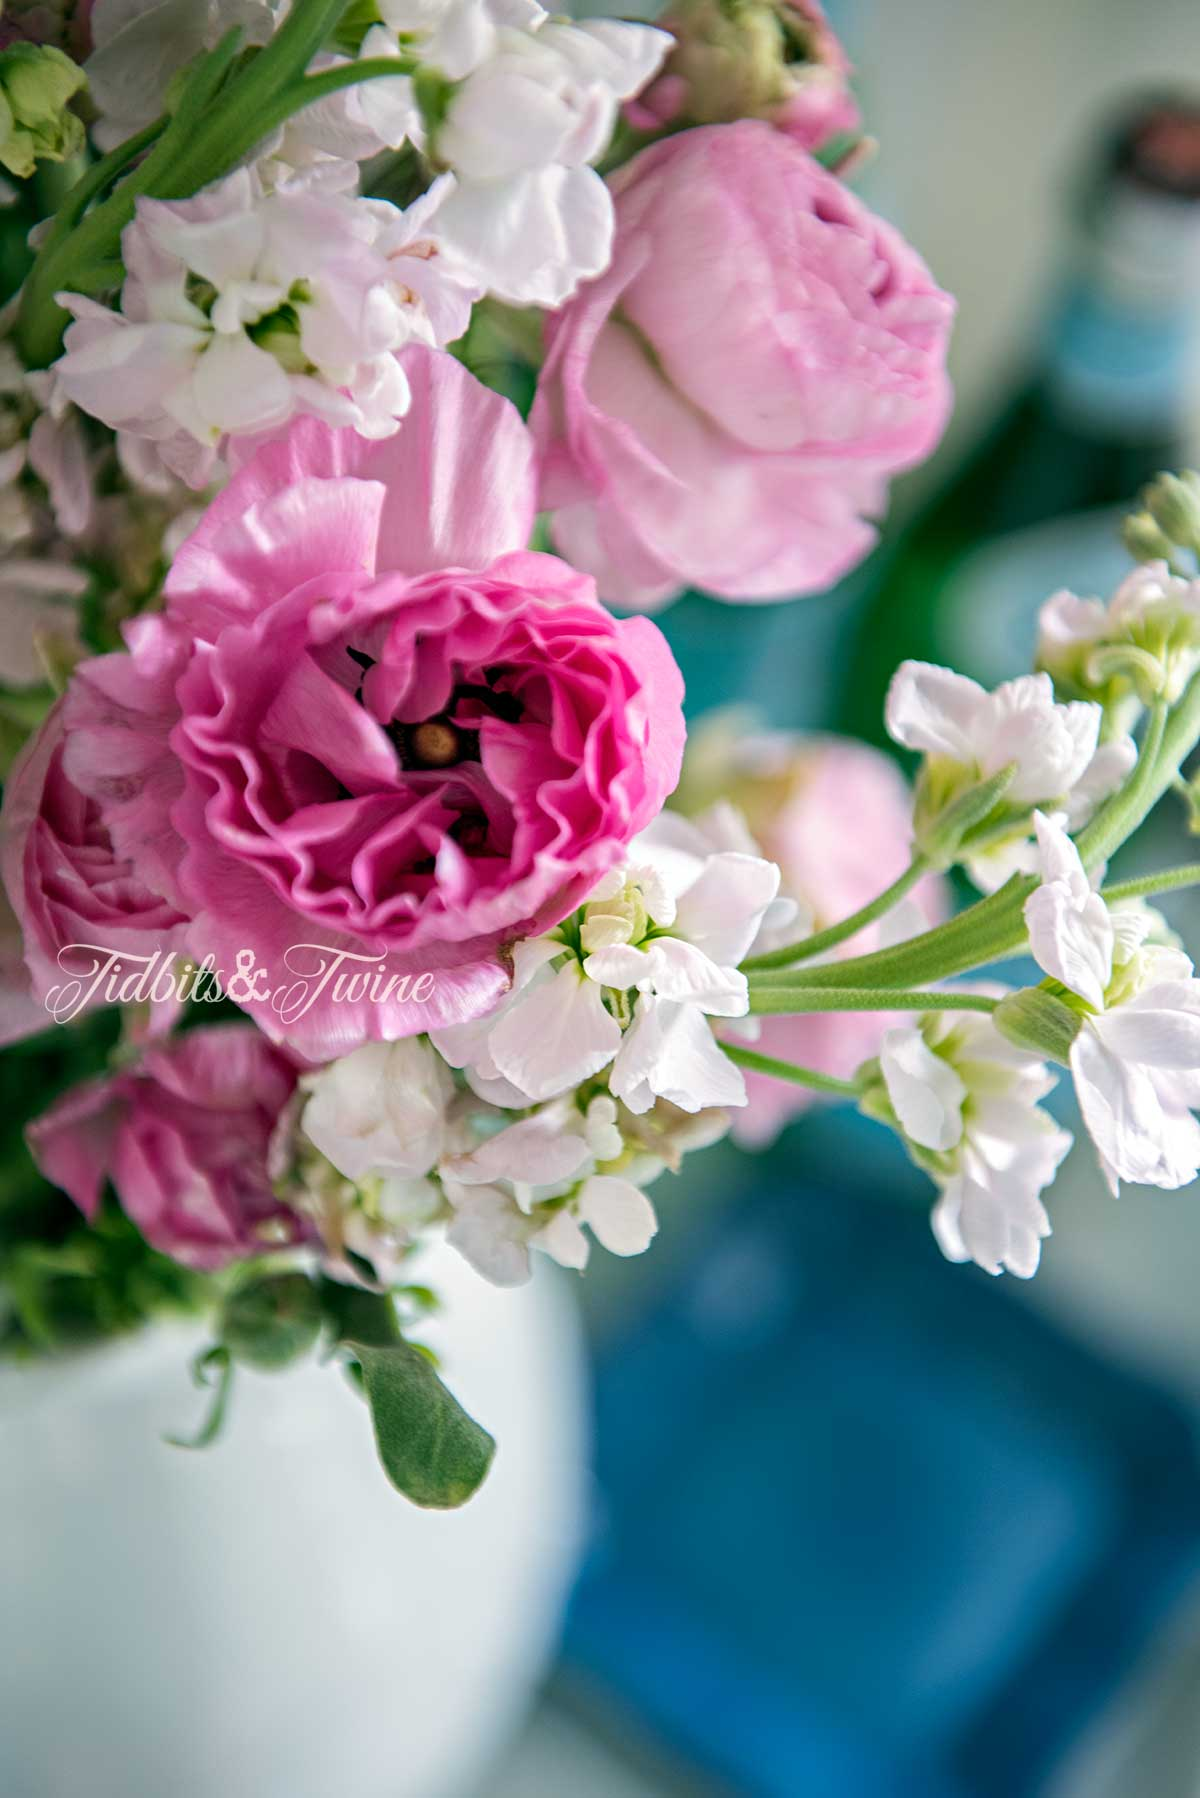 Closeup of pink peonies and white stock in a white ceramic pitcher